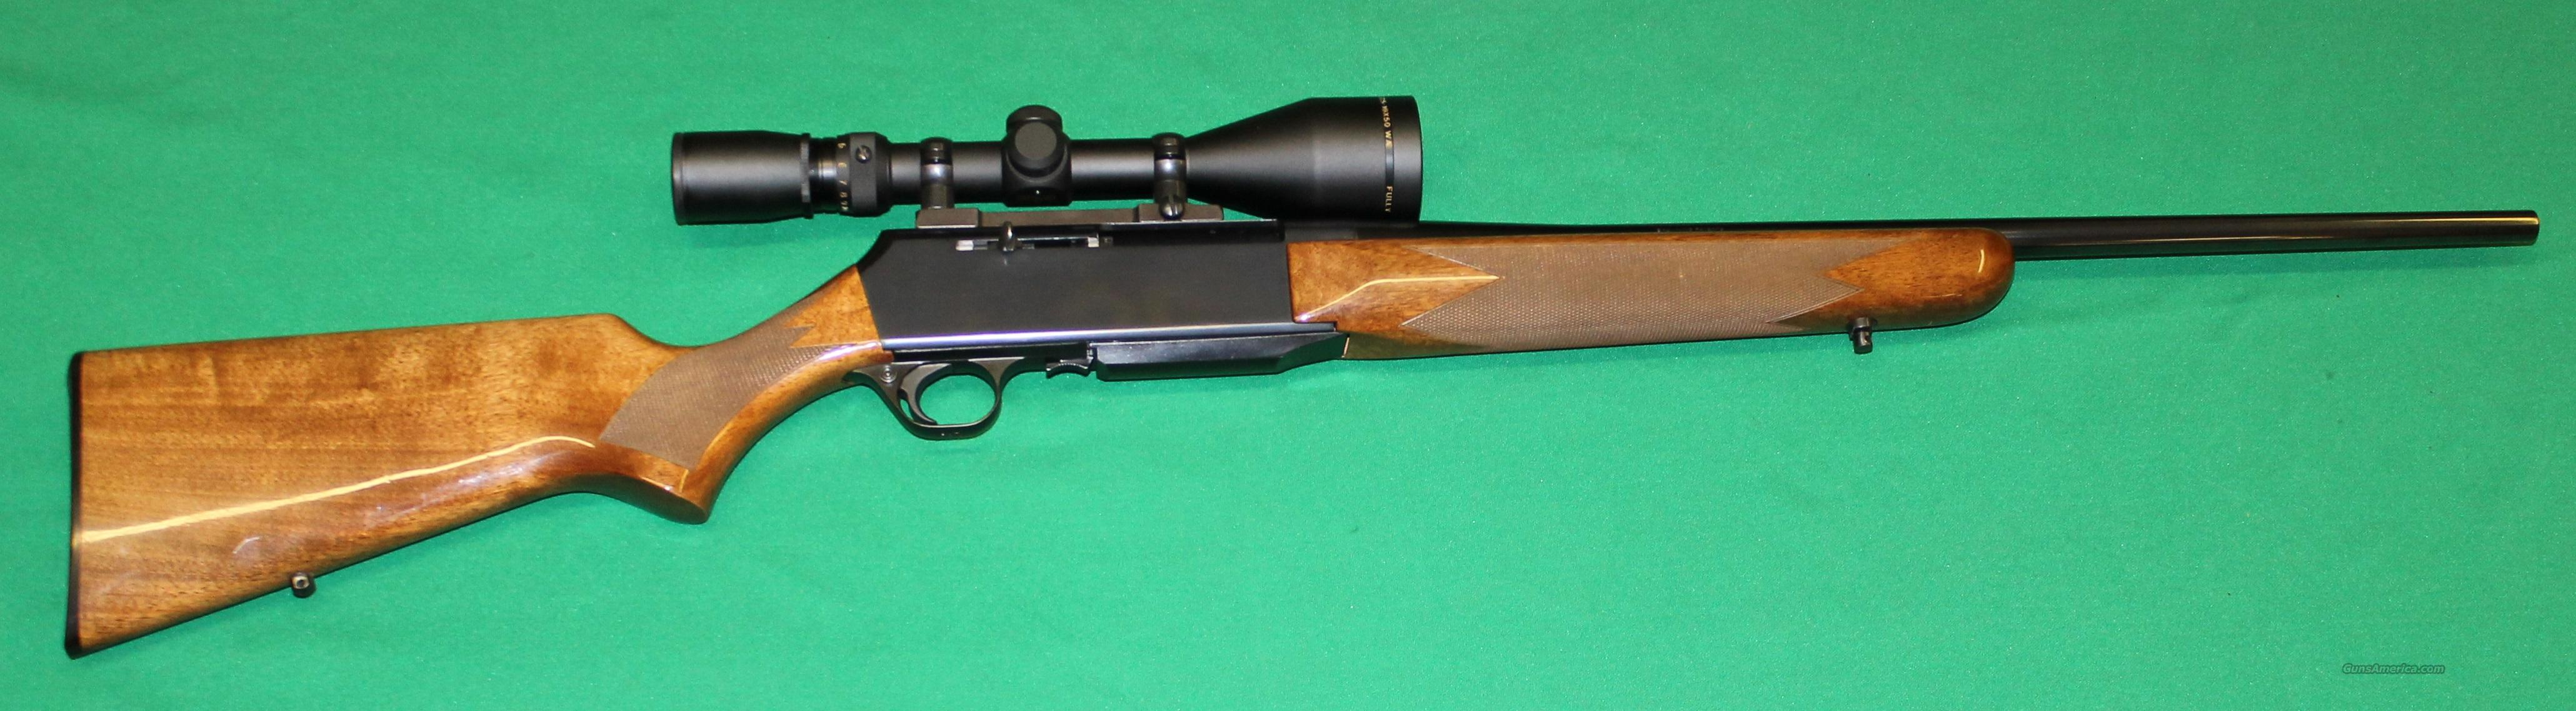 "Browning Belgium BAR, 270 Winchester 22"" Barrel, Used 98%  Guns > Rifles > Browning Rifles > Semi Auto > Hunting"